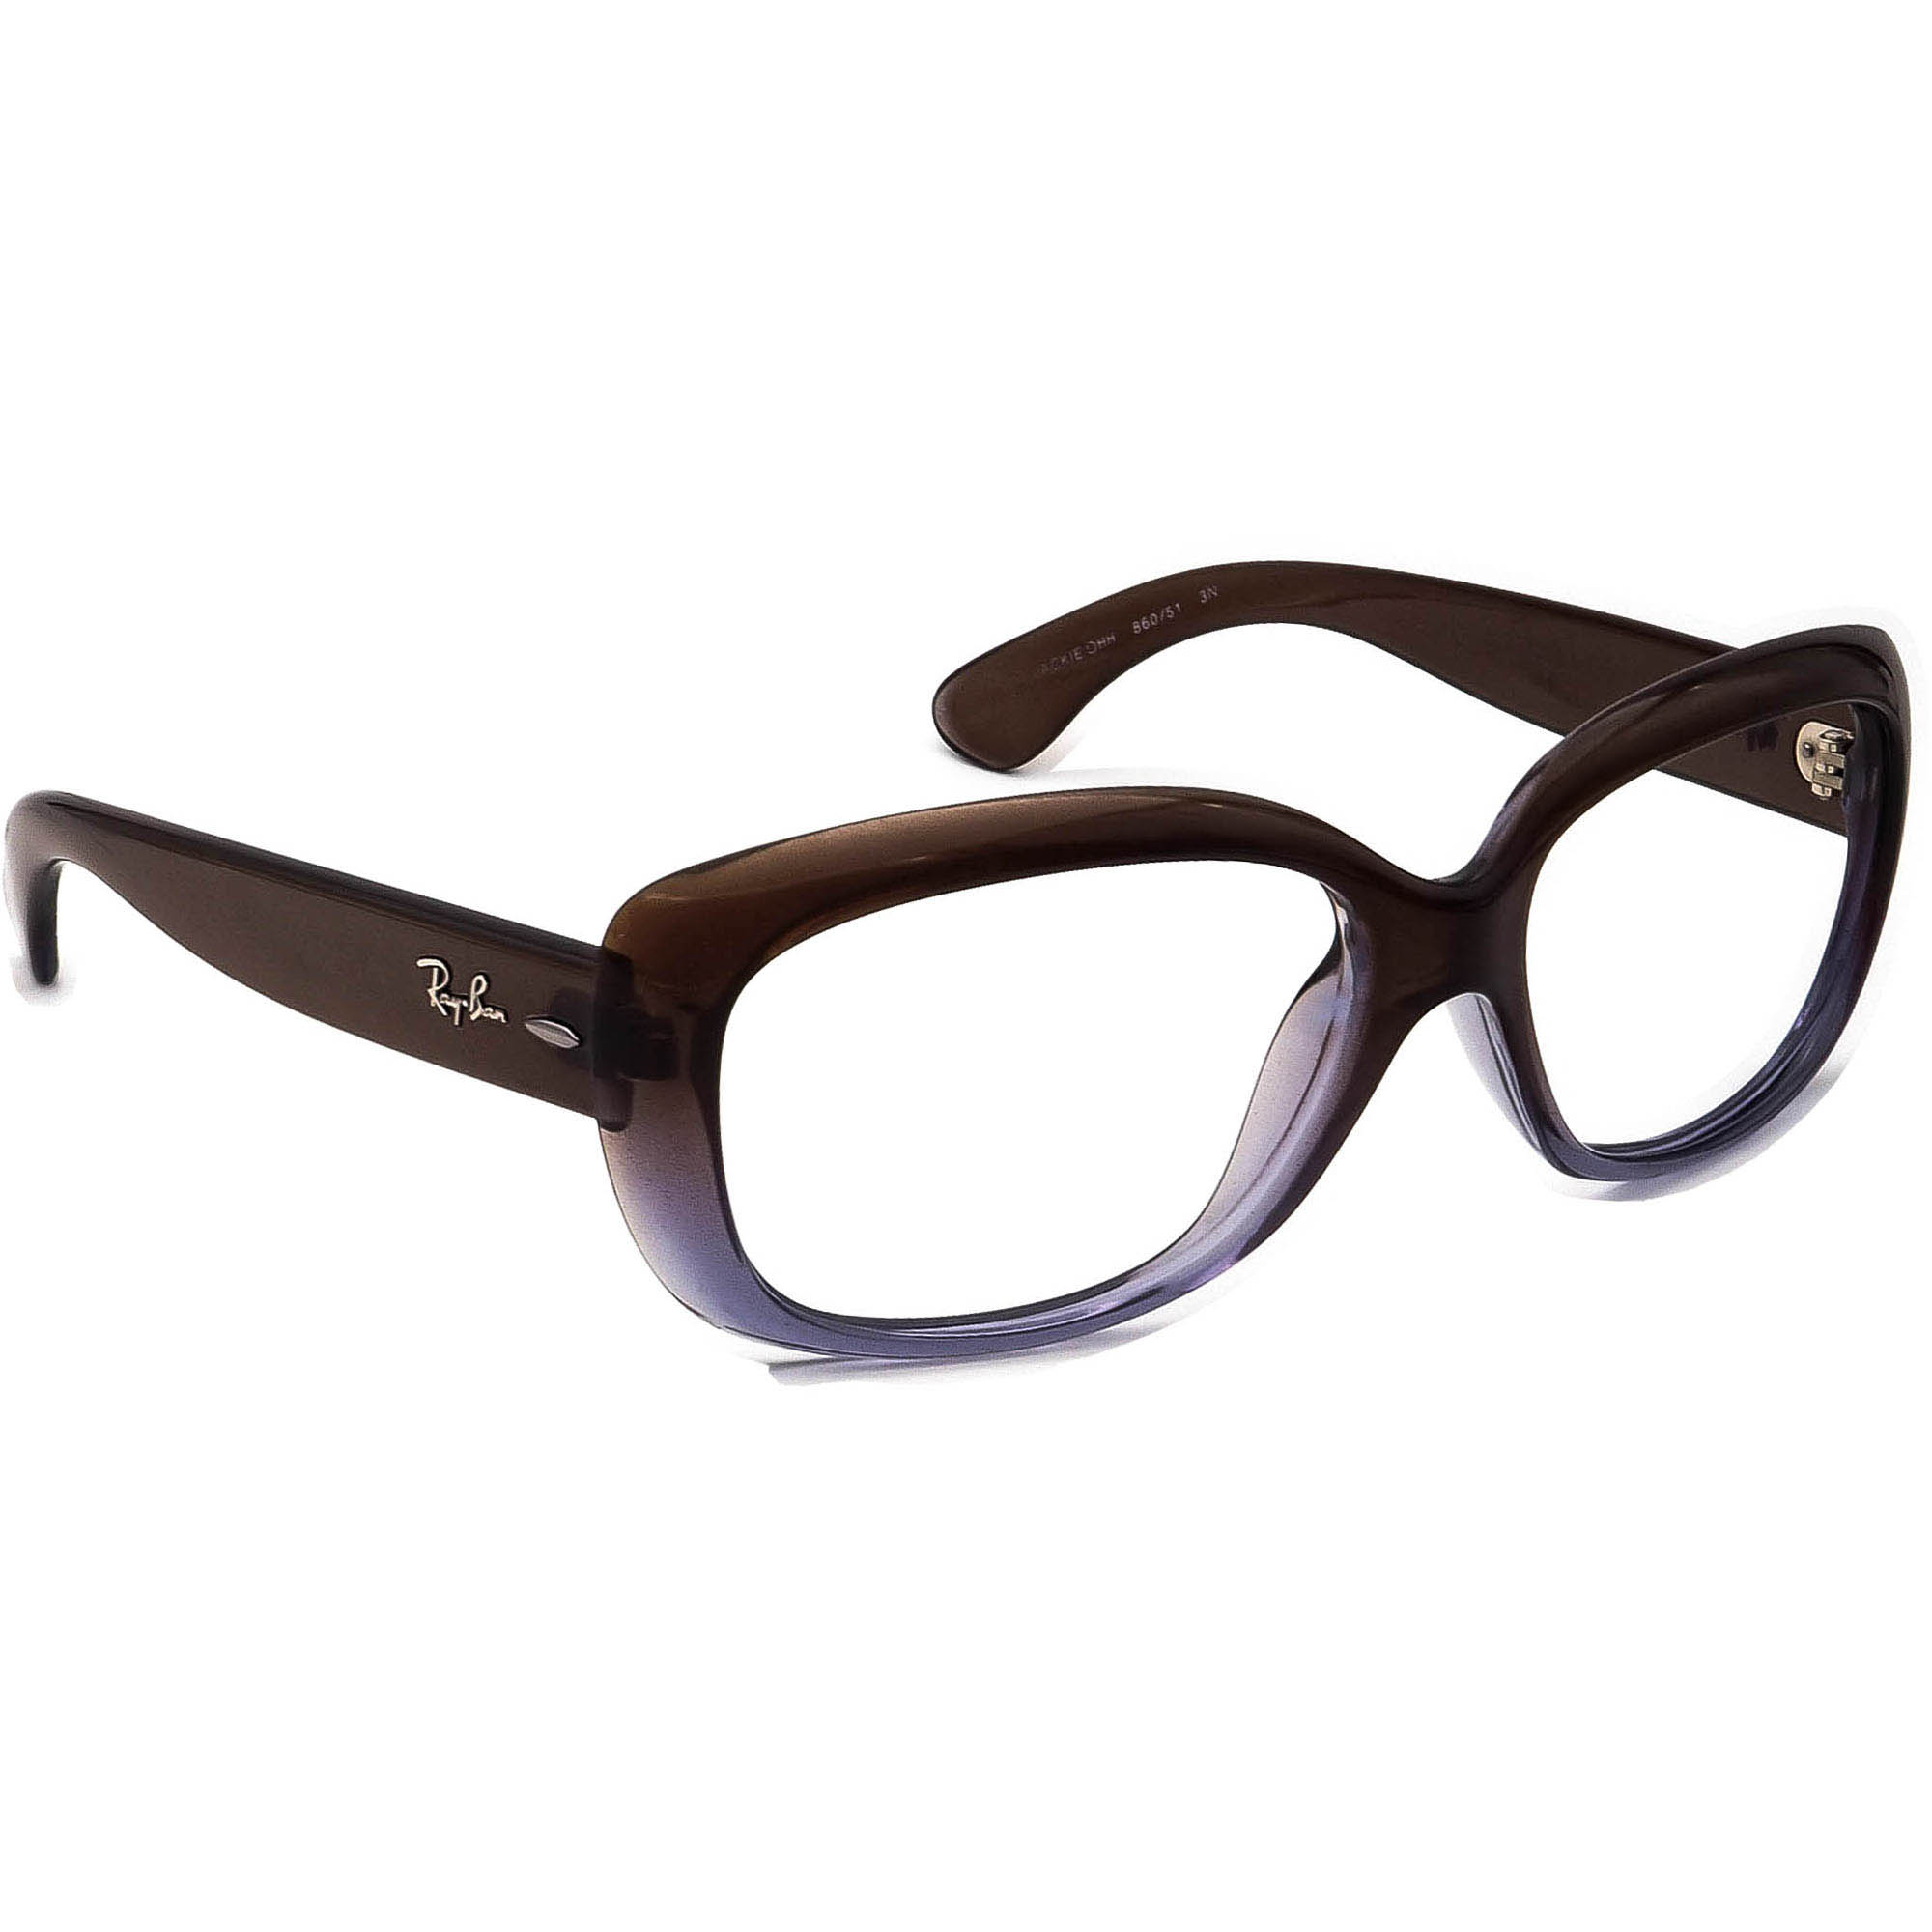 Ray-Ban Jackie OHH 860/51 Sunglasses Frame Only